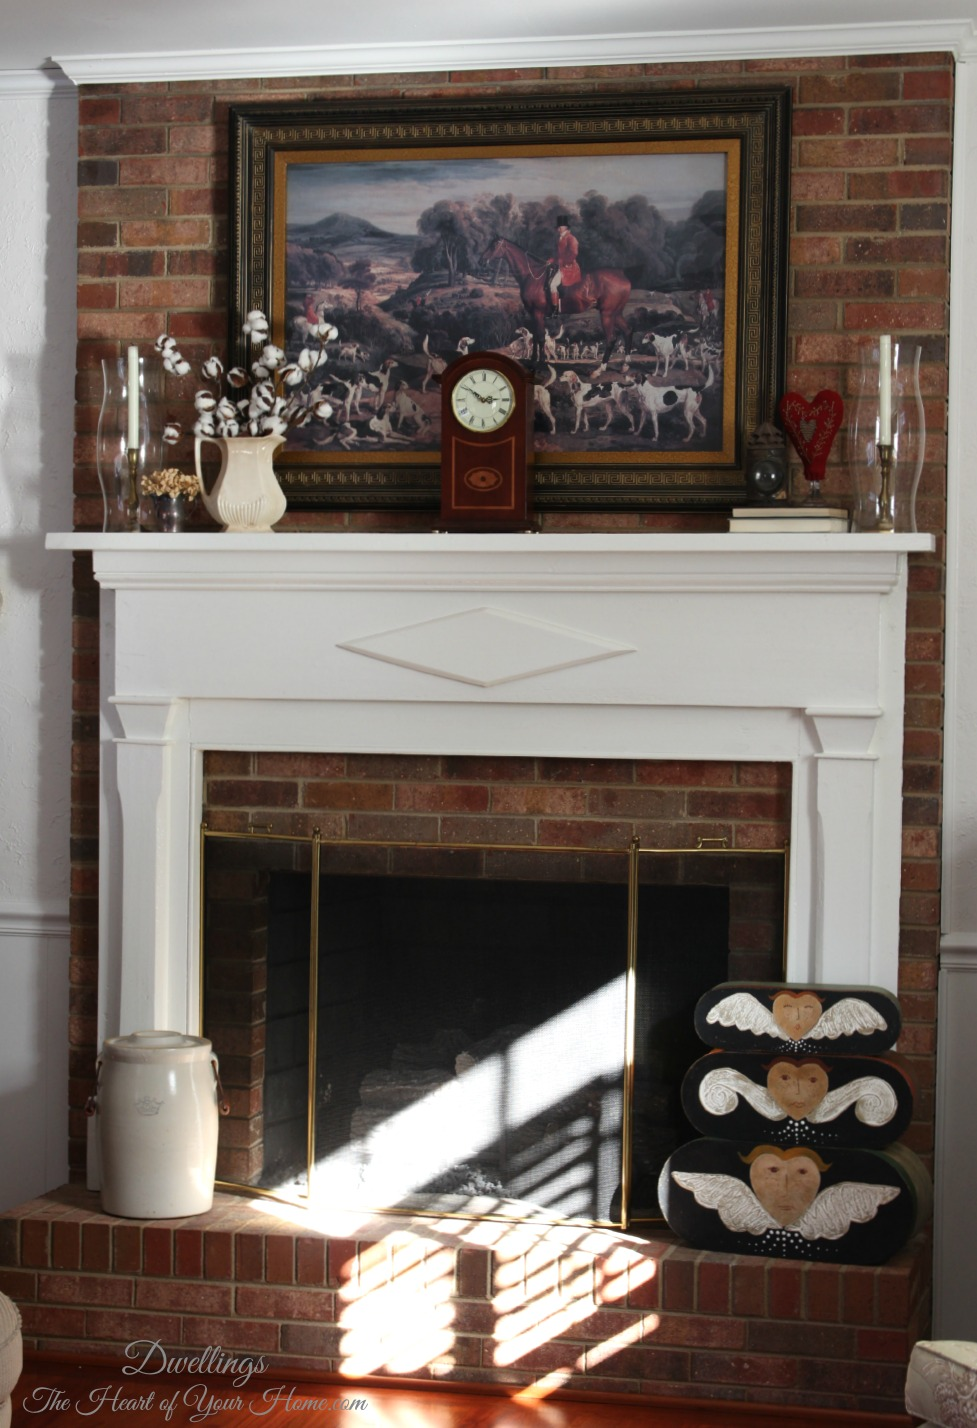 Decorating The Fireplace Mantel Amp Hearth Dwellings The